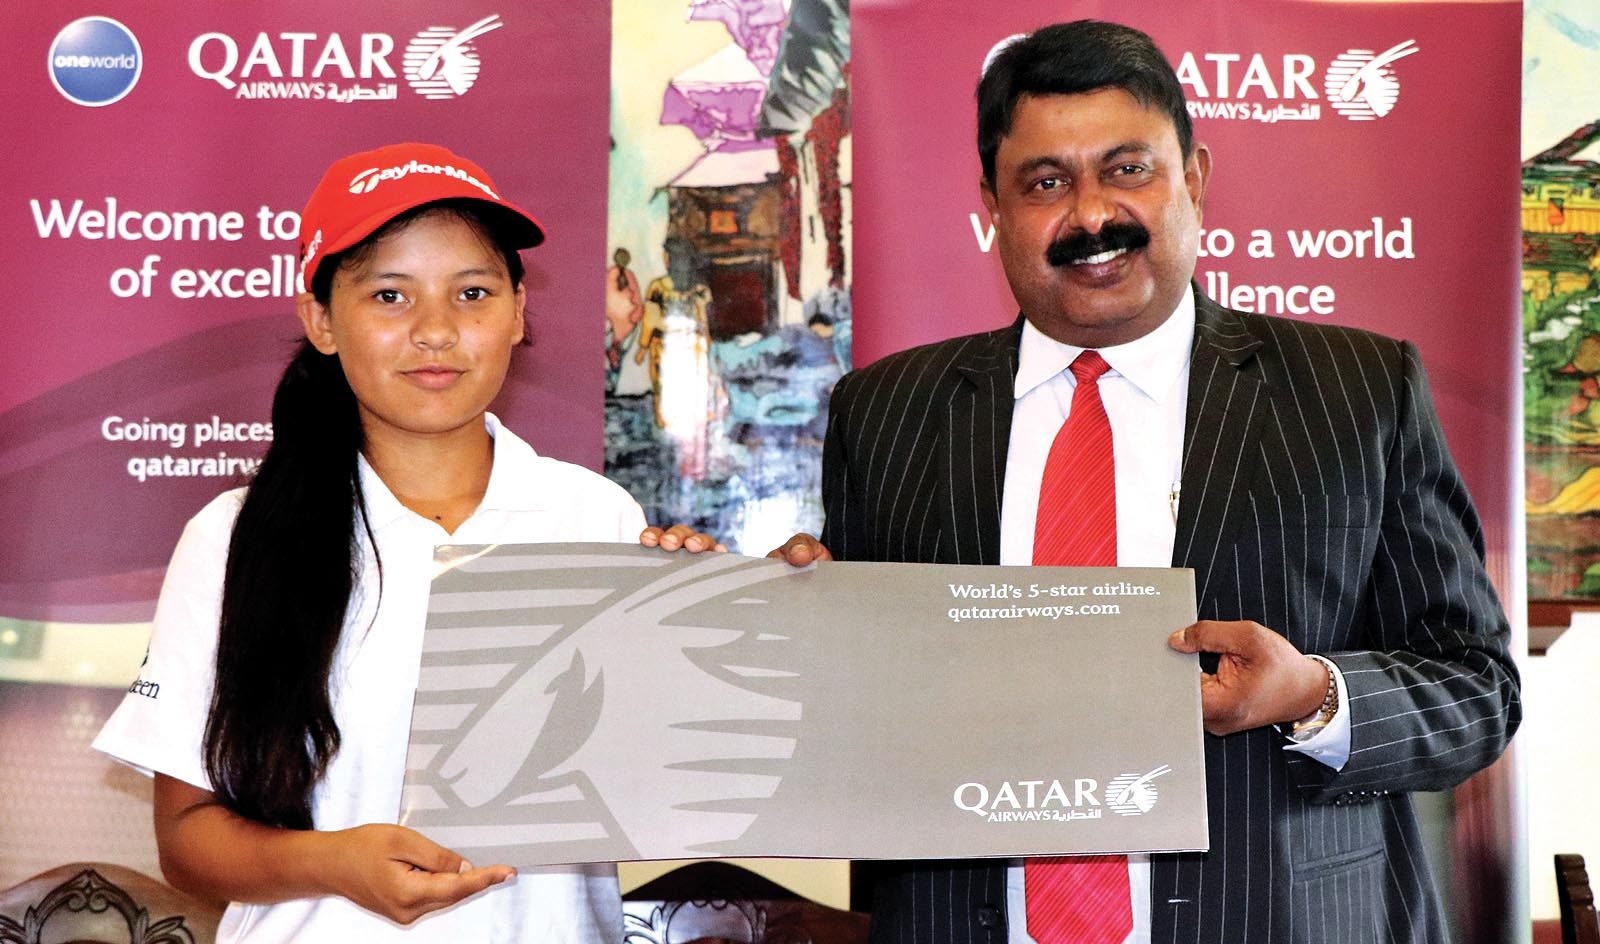 Country Manager of Qatar Airways Jayprakash Nair handing over air tickets to golfer Pratima Sherpa during a press meet at the Royal Nepal Golf Club in Kathmandu, on Tuesday. Photo: THT